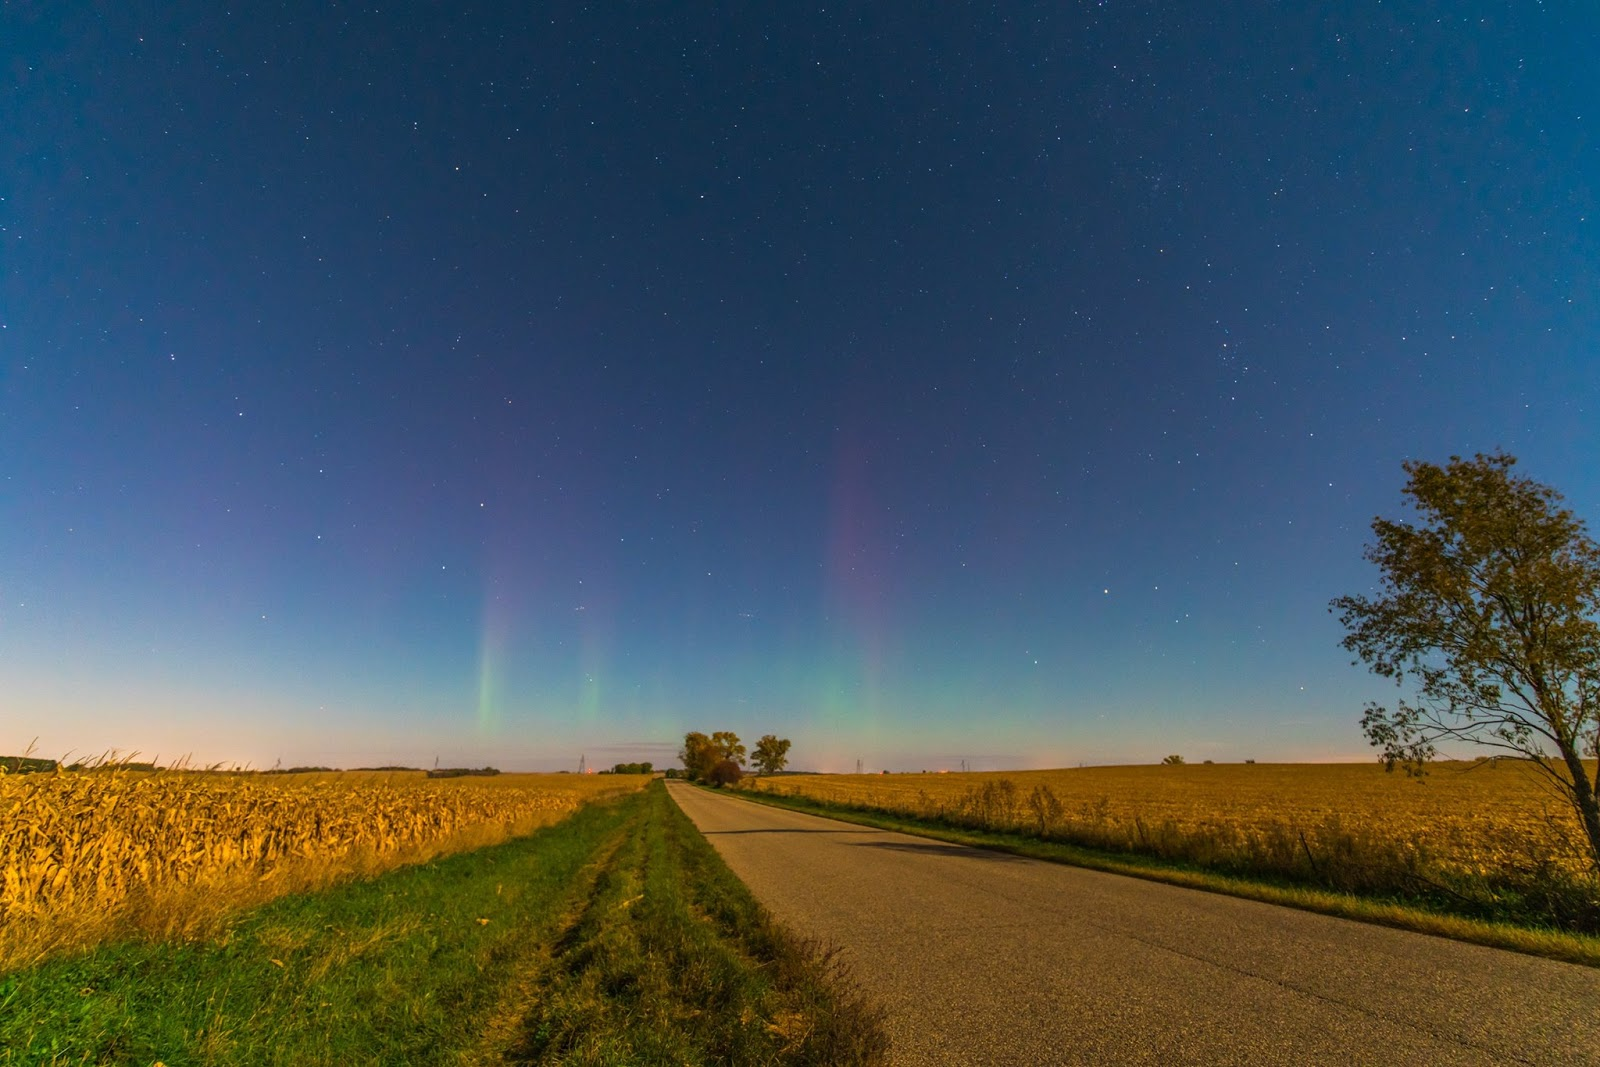 A colorful photo of a flat landscape shows faint green and red aurora pillars